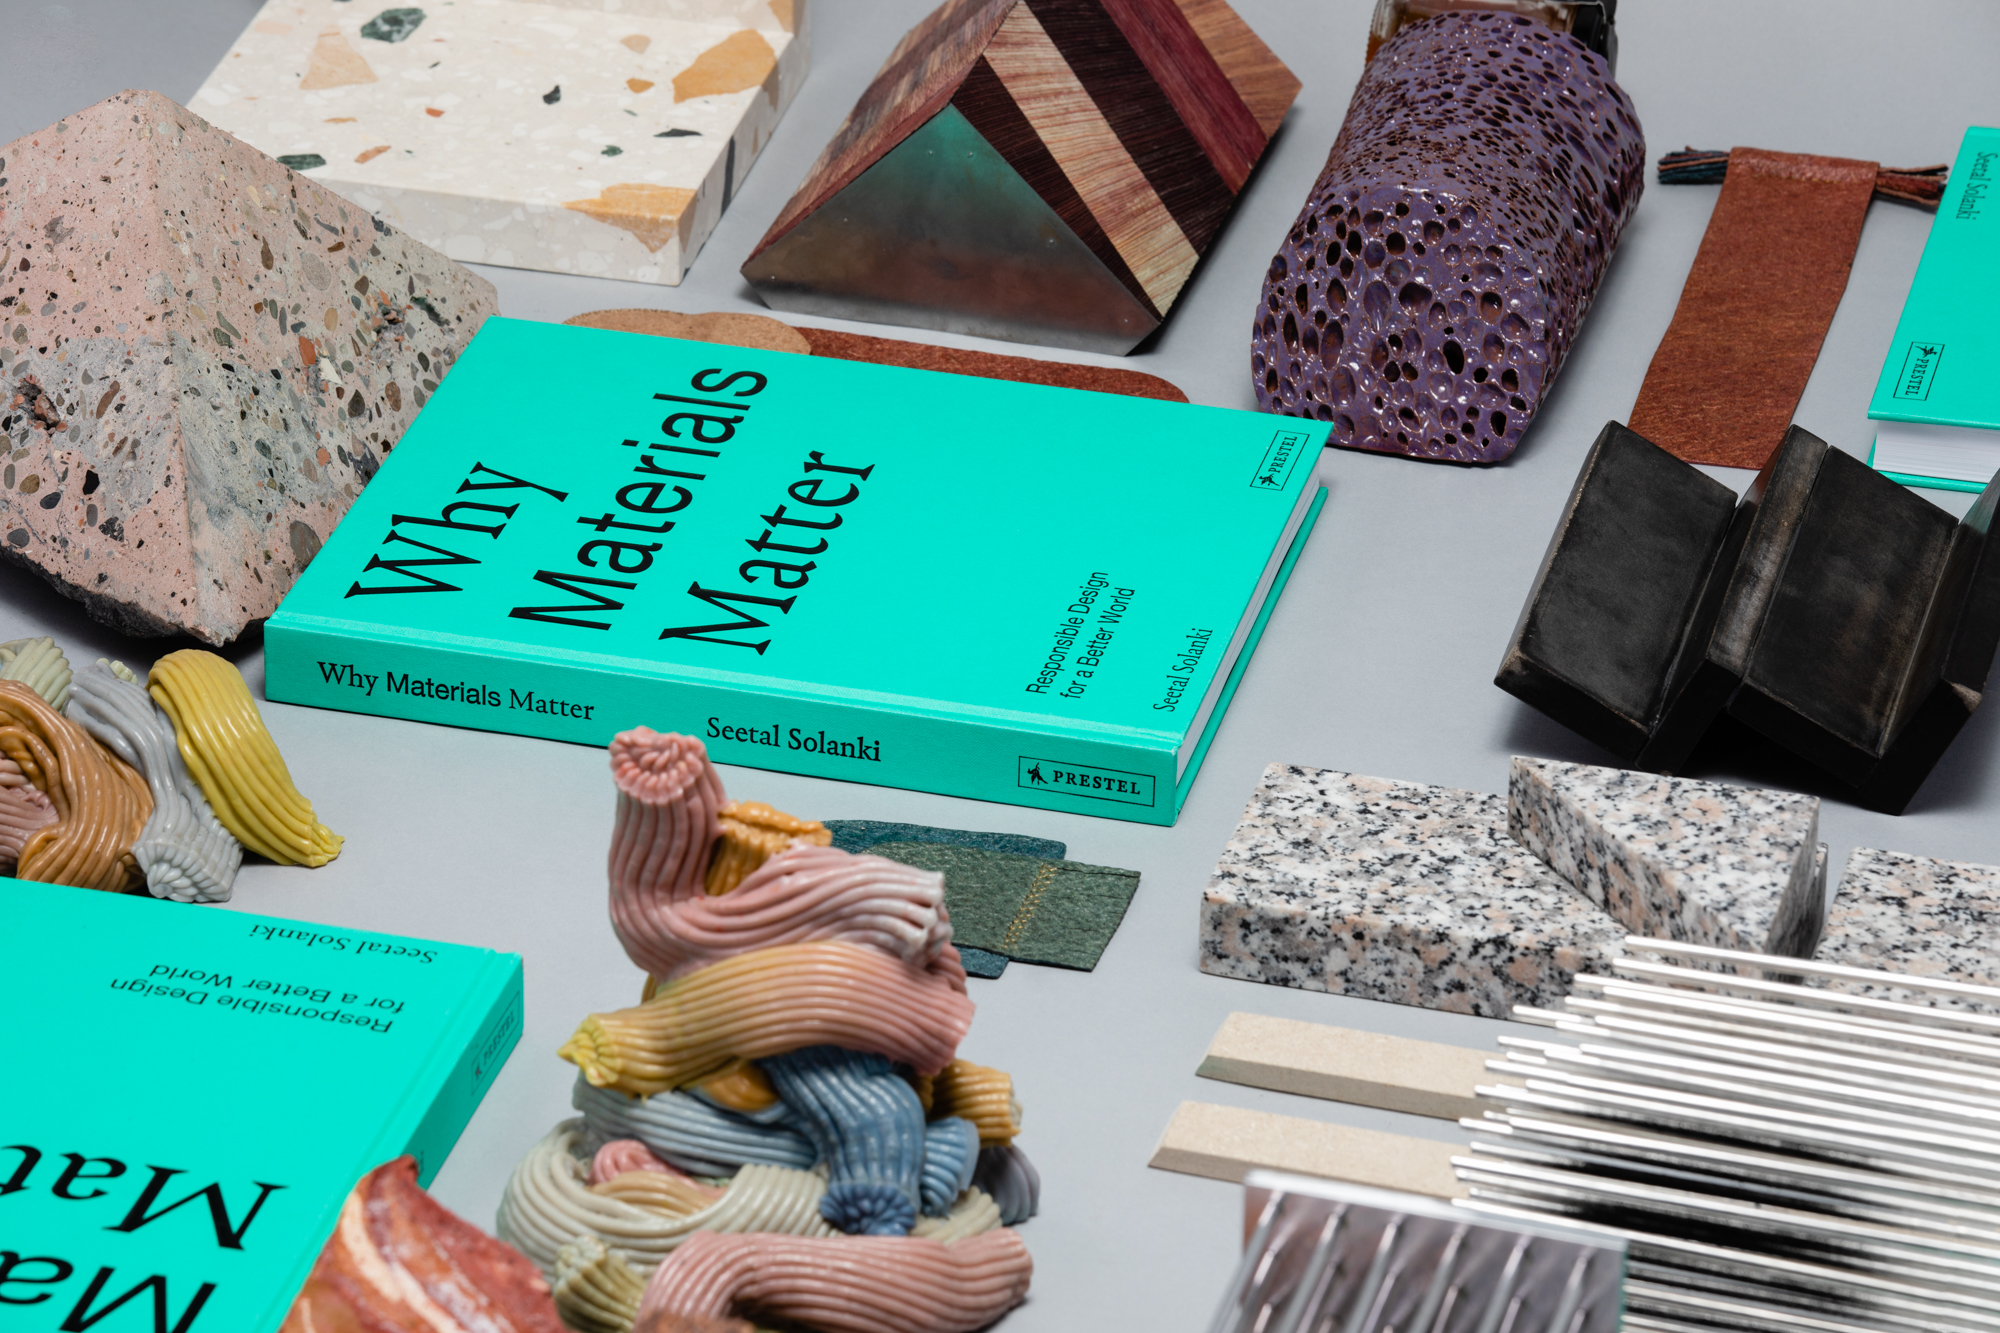 Why Materials Matter Book Launch + Exhibition